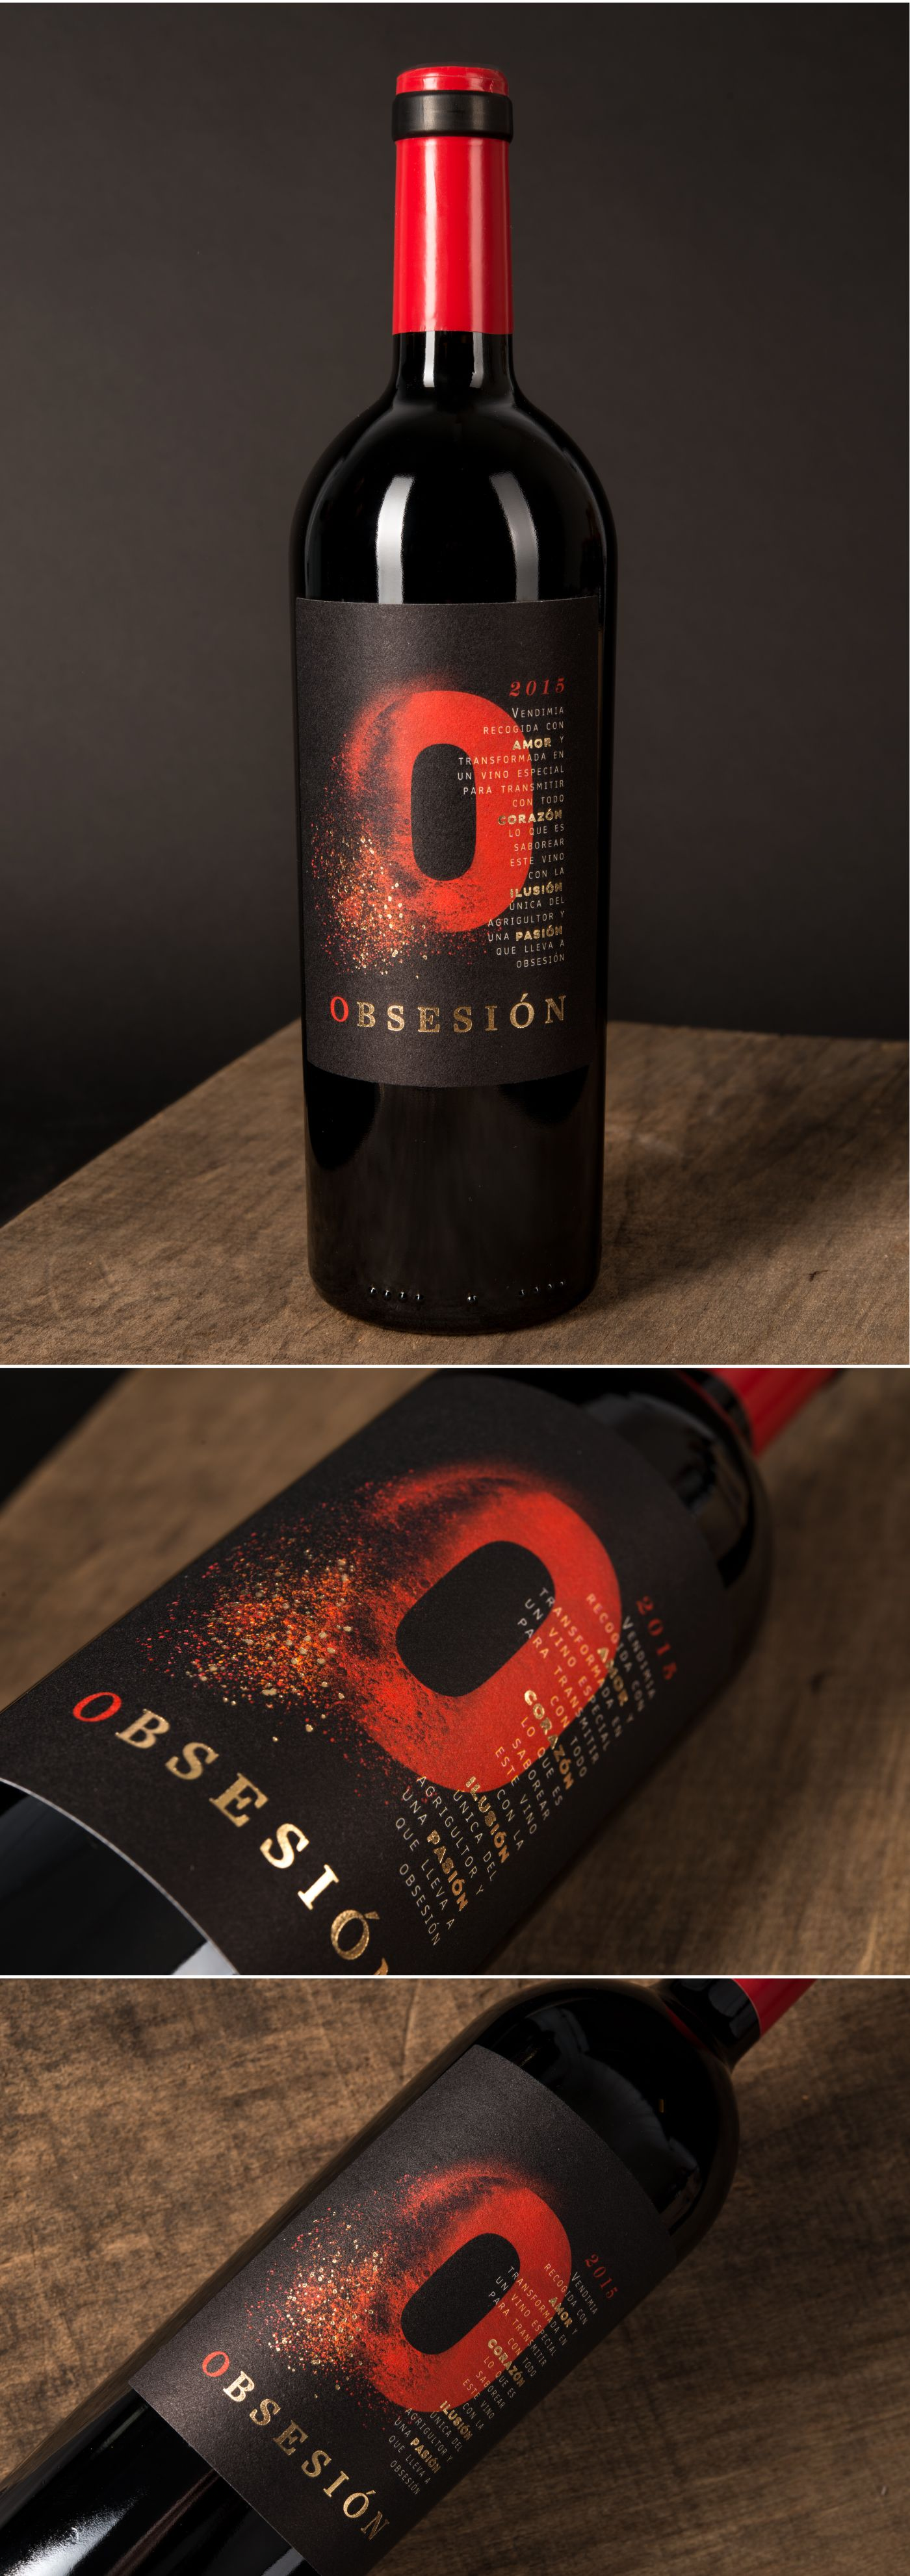 Obsesion Packaging Design By Ruska Martin Associates See More At Ruskamartin De Wine Winelabel Packaging Wine Label D Verpackungsdesign Pinot Noir Malbec